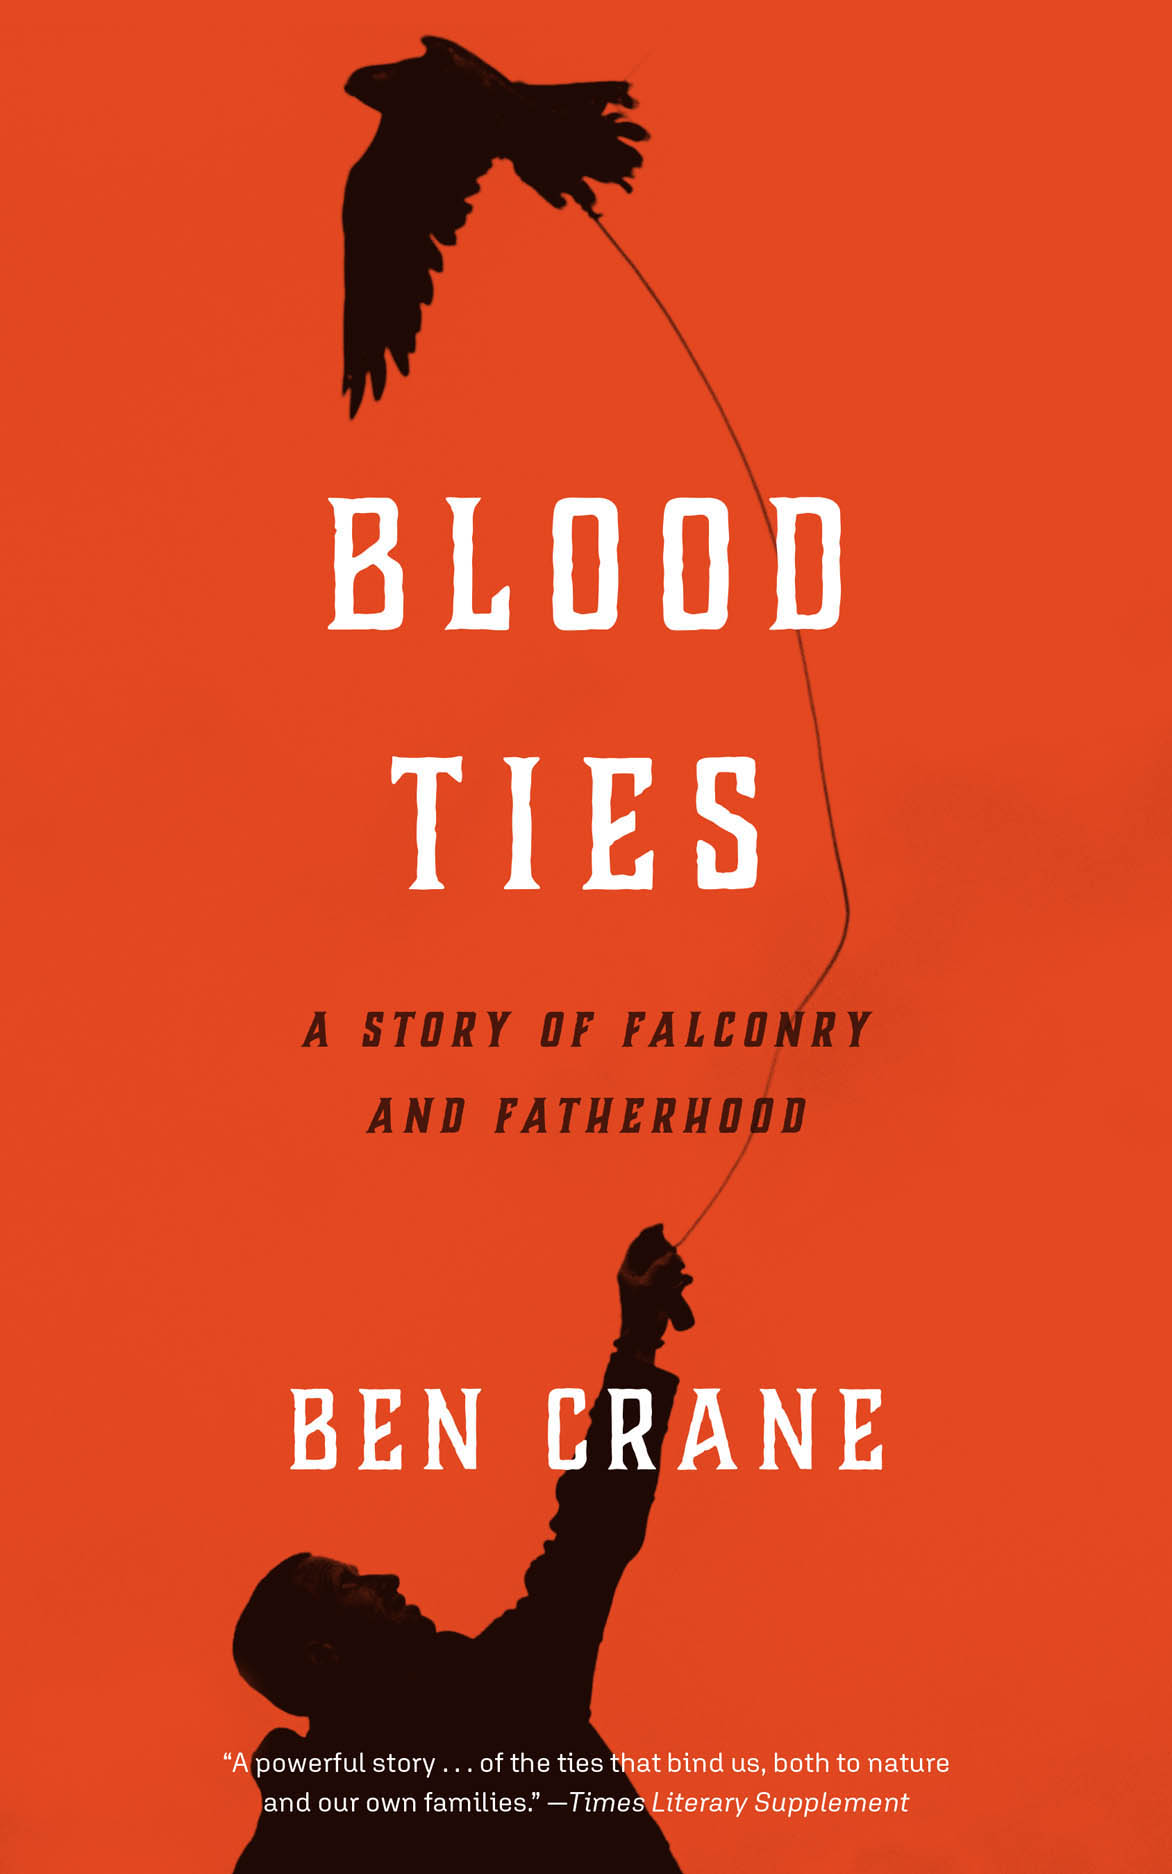 Blood Ties: A Story of Falconry and Fatherhood